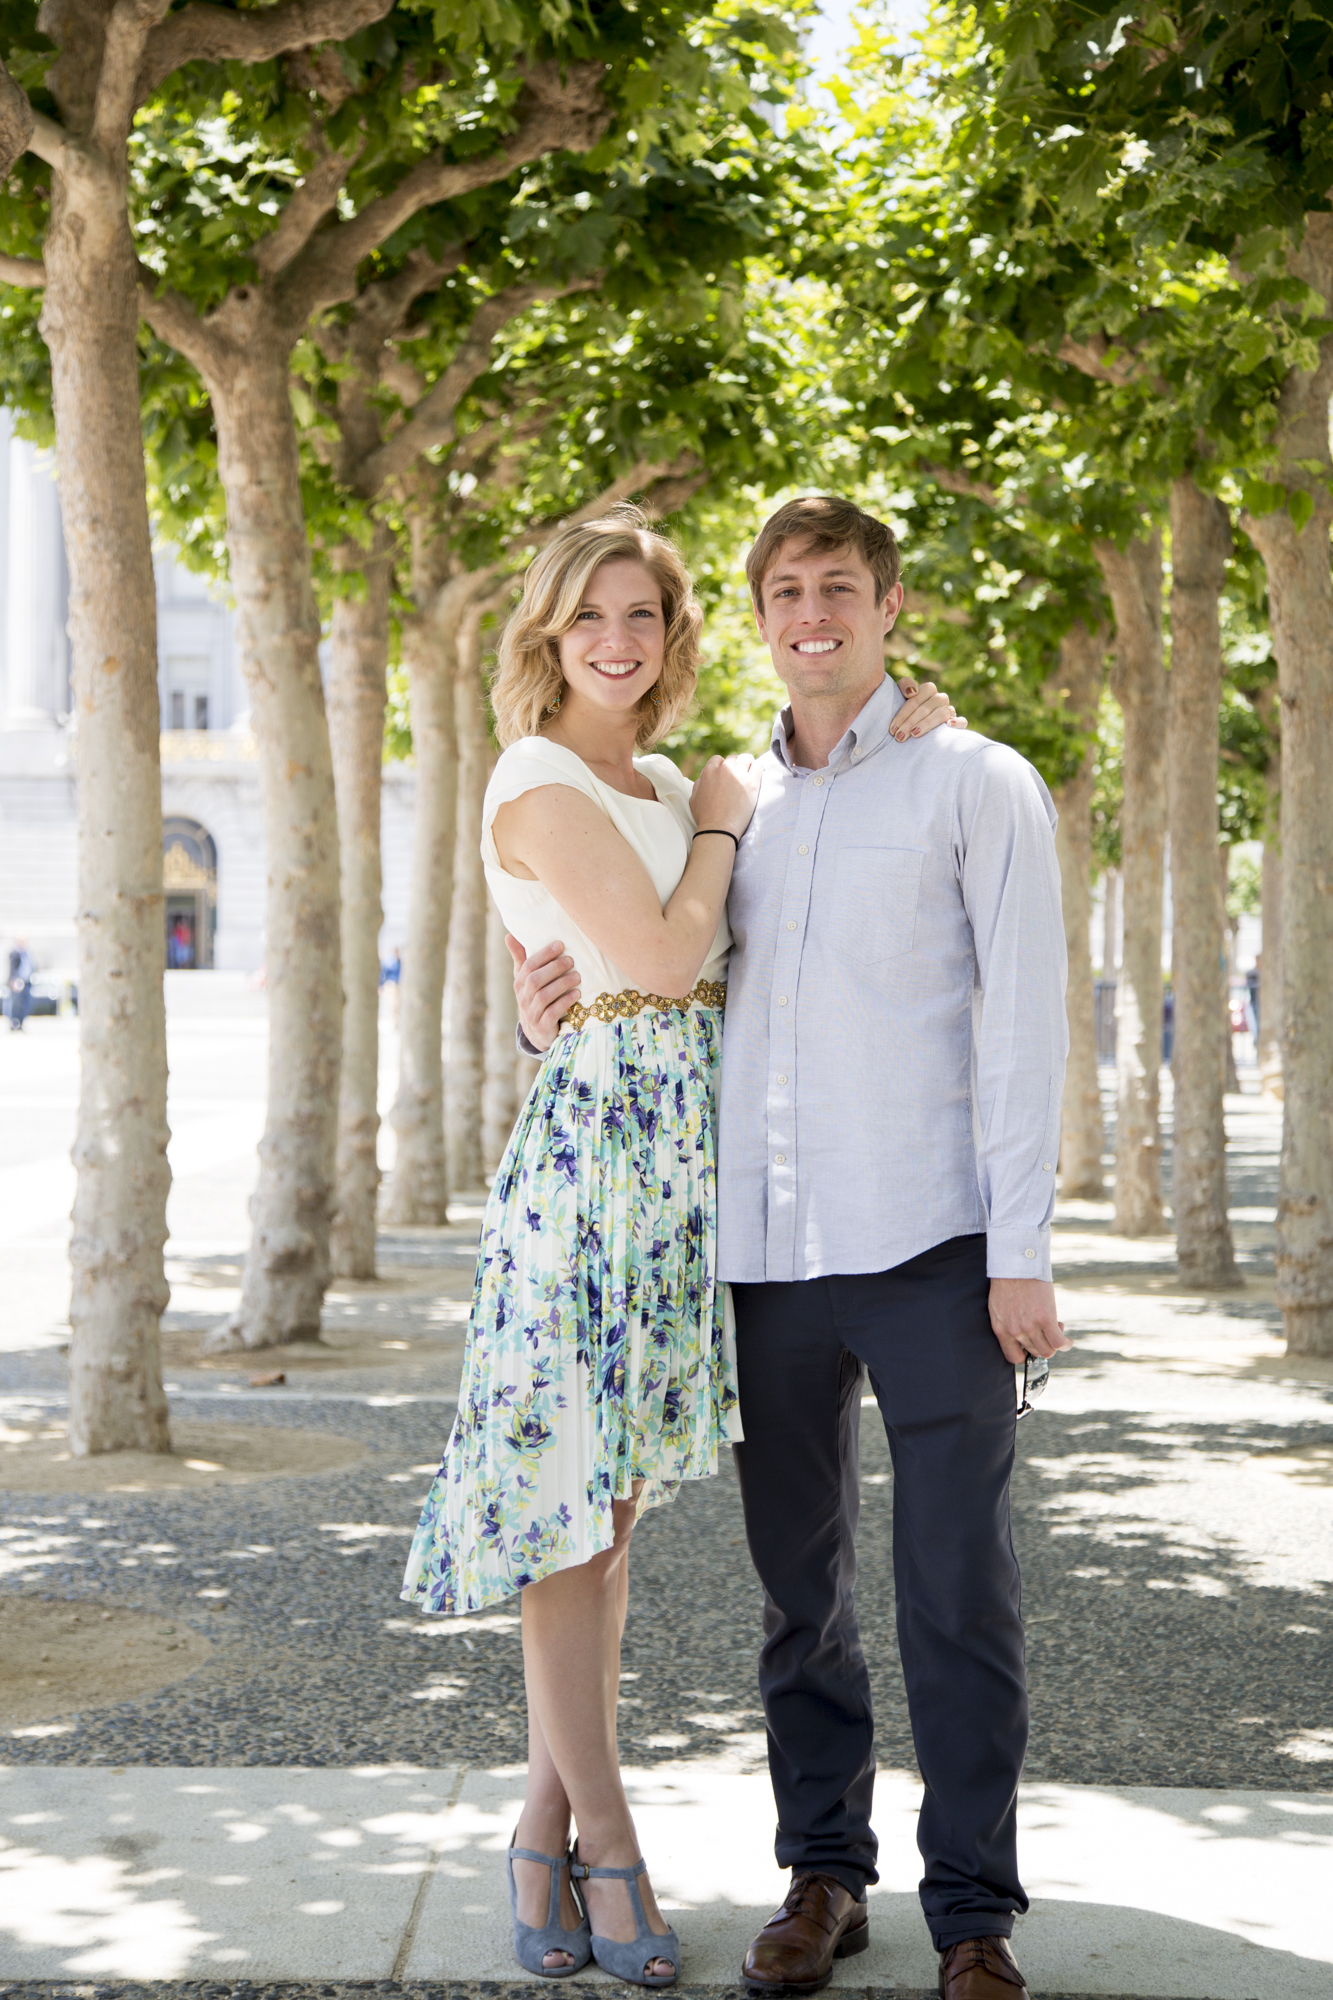 Ashley and Santi were married at City Hall in San Francisco